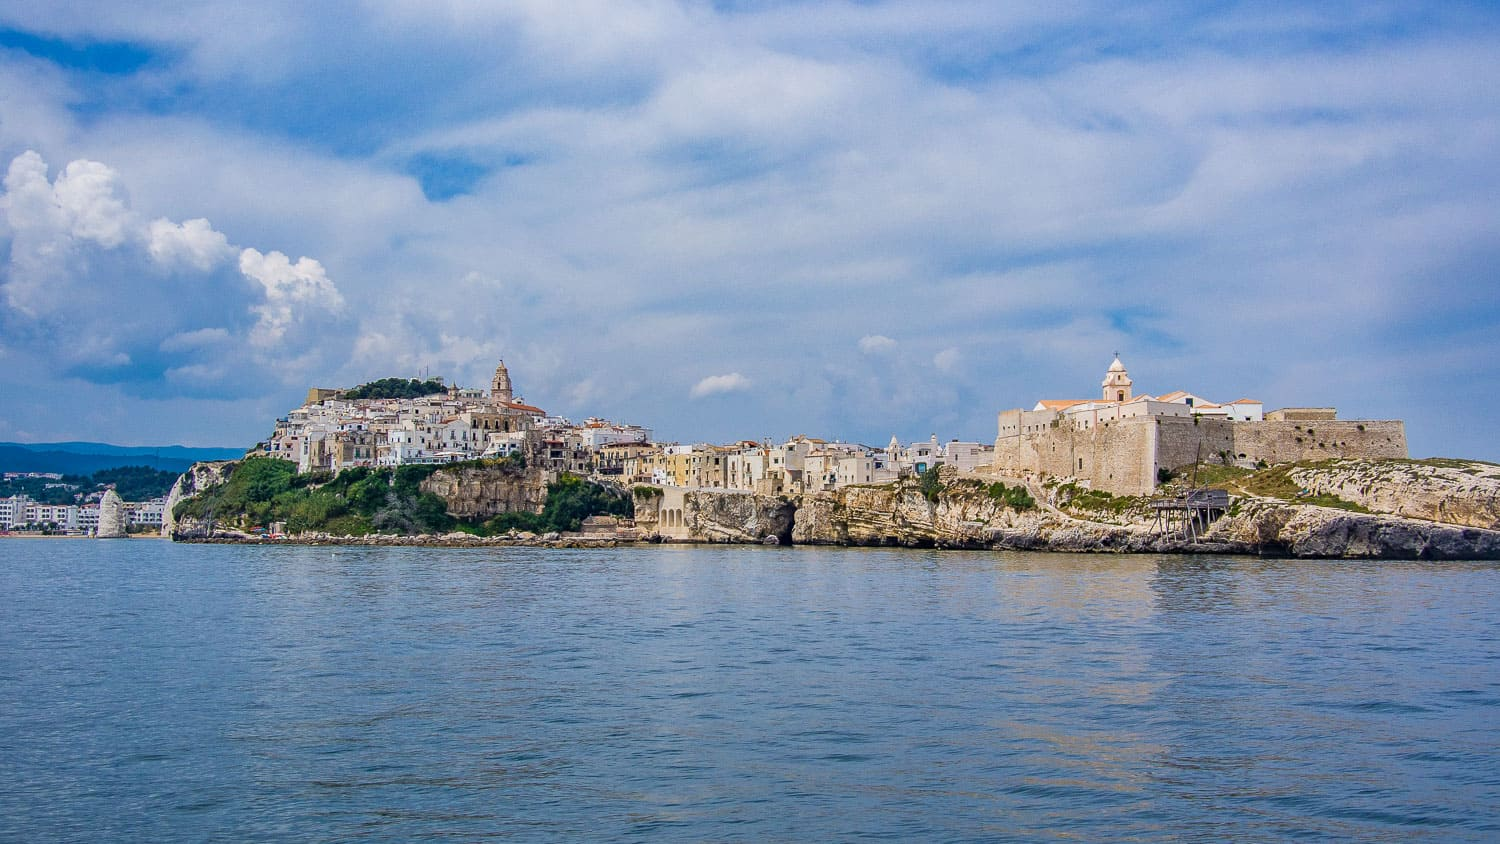 Vieste Italy travel guide - discover the best things to do in Vieste on the Gargano Peninsula of Puglia plus where to eat and stay